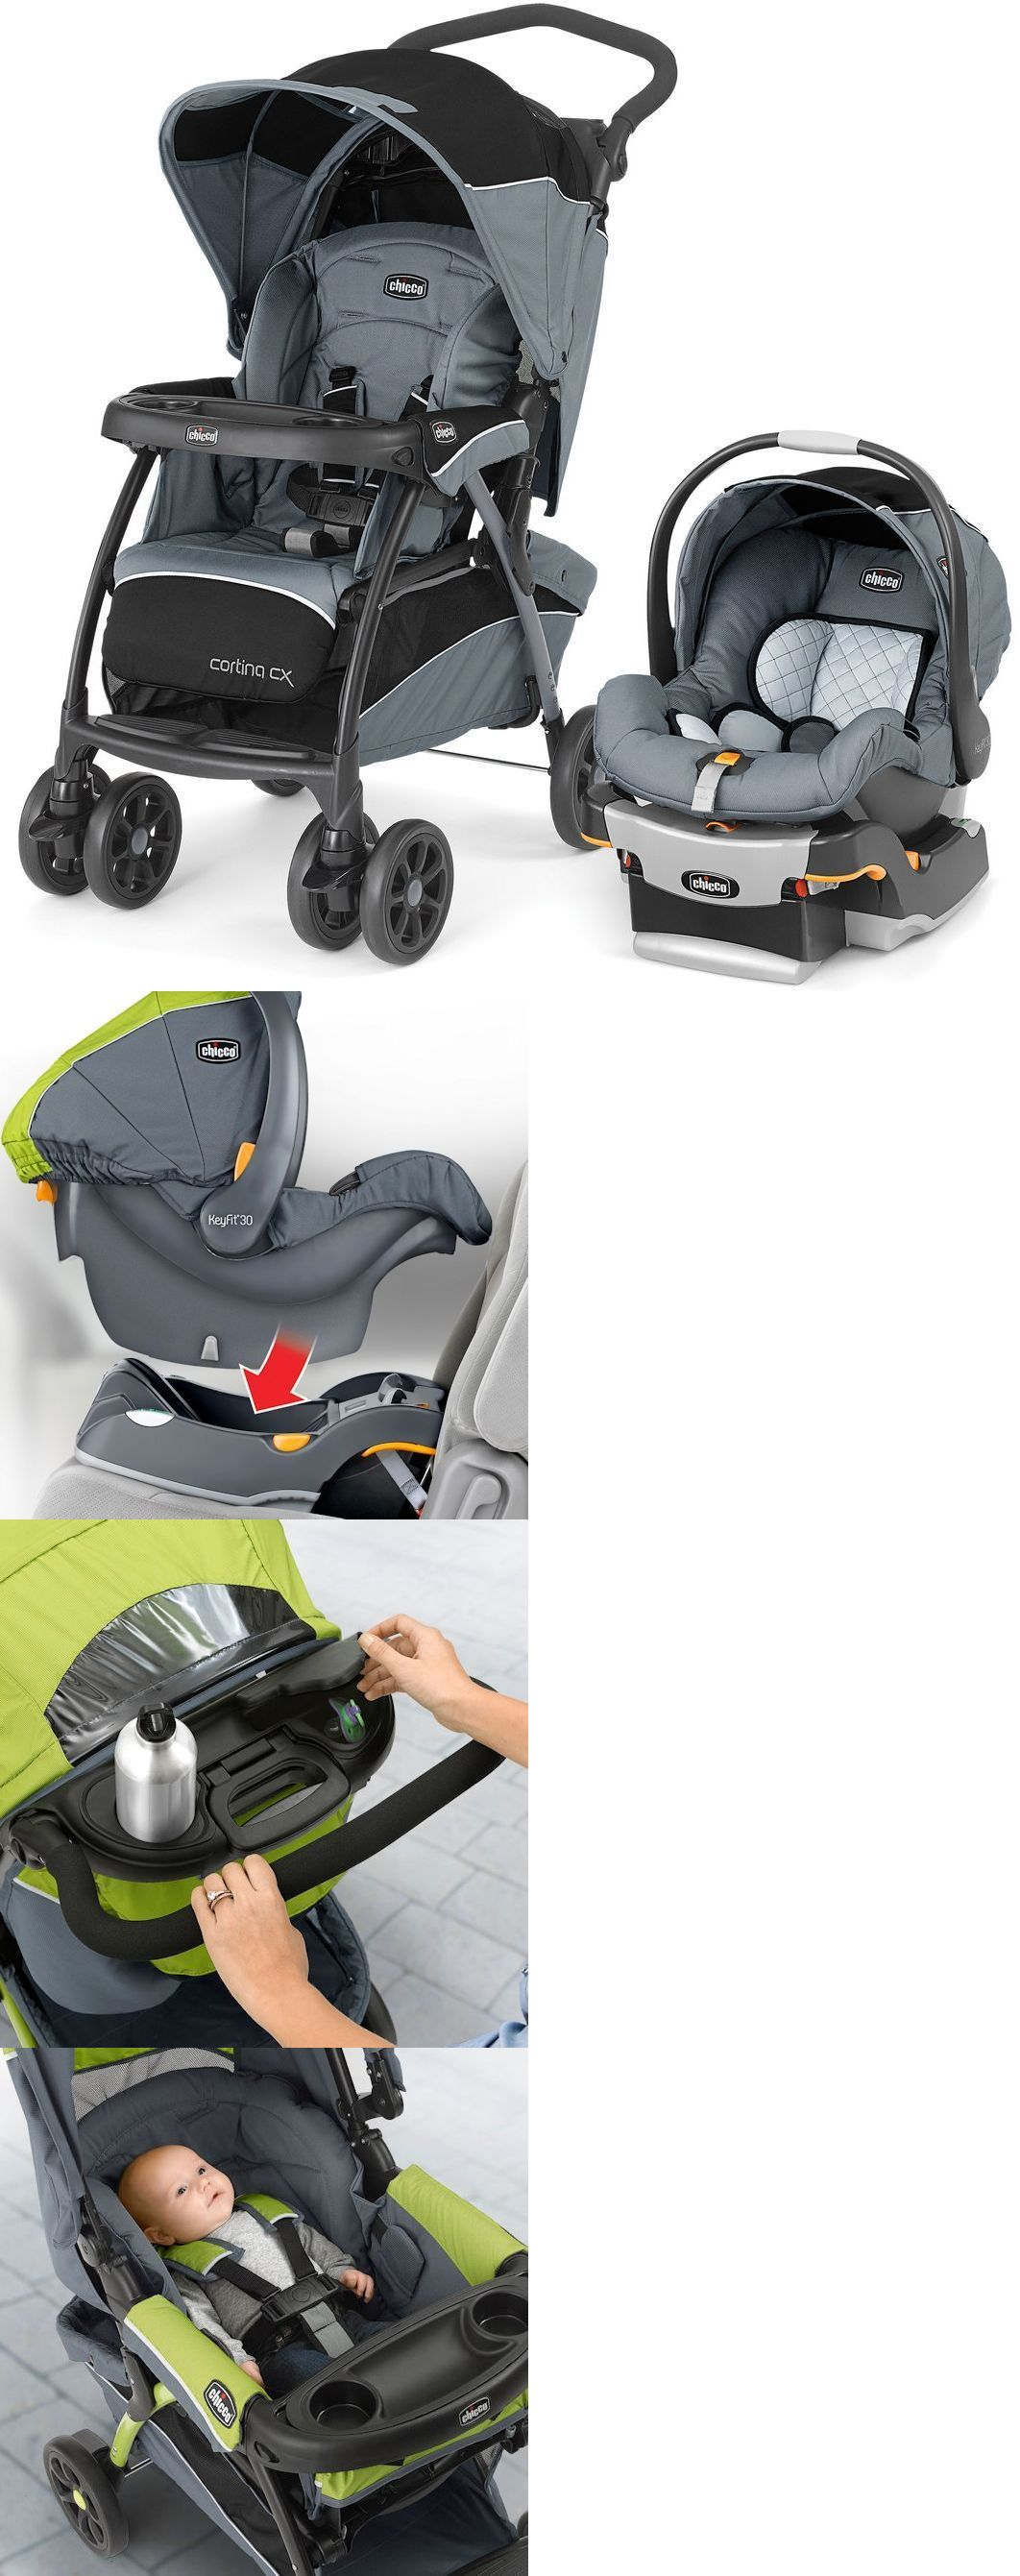 Strollers 66700 Chicco Cortina Cx Baby Travel System Stroller W